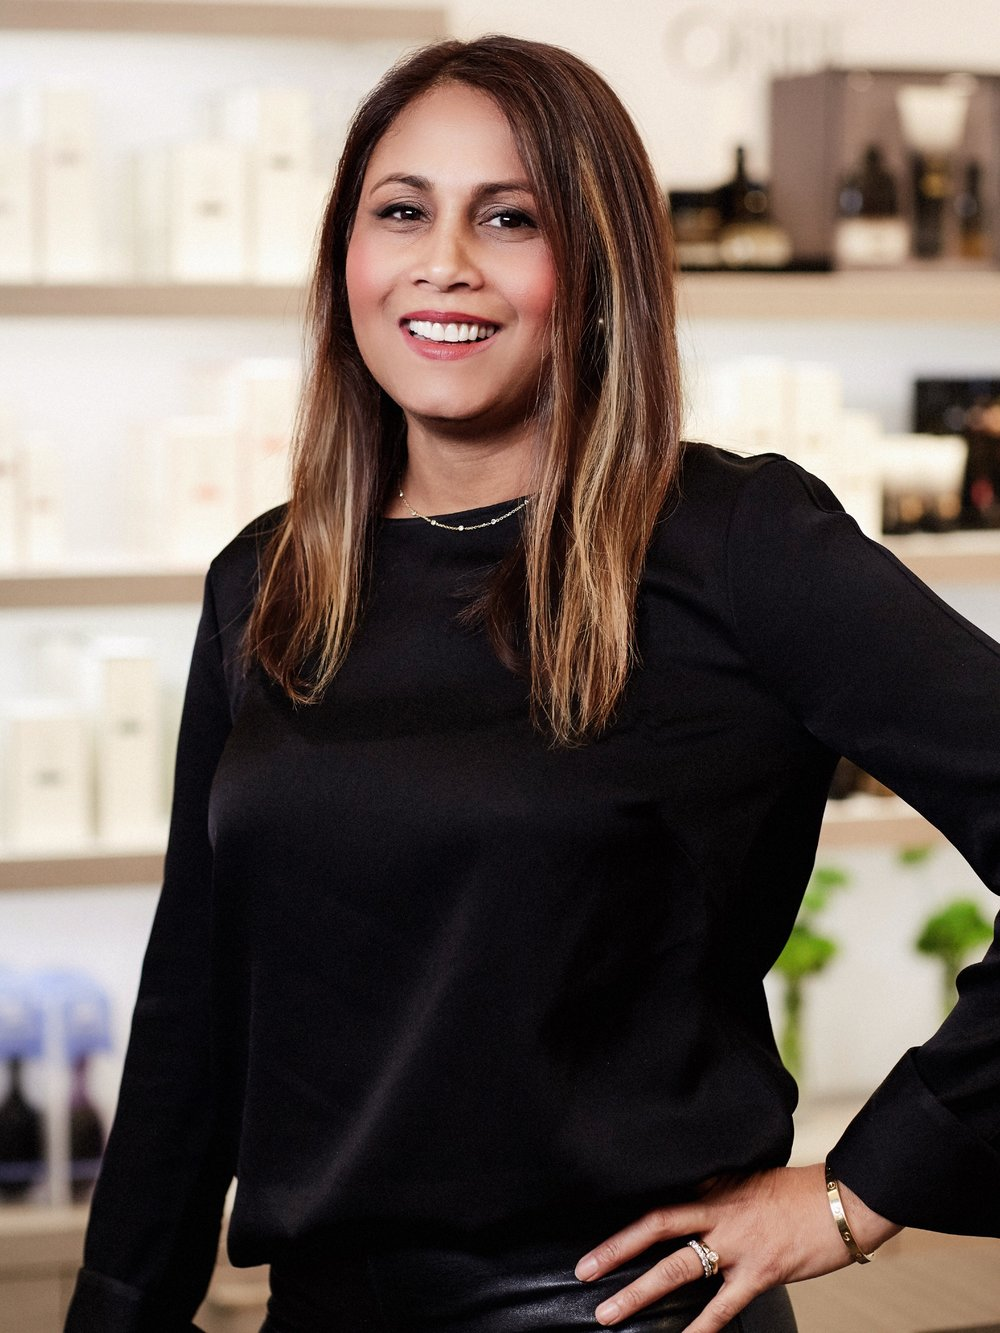 "TARA   Featured in  Allure  as one of ""New York City's Best Kept Secrets,"" Tara is a master colorist and senior educator at Butterfly Studio Salon. Tara has worked at Butterfly Studio Salon for 18 years and has worked in the beauty industry for 22. Known for her less-is-more aesthetic, Tara loves color transformation and guiding her clients in the right direction, whether that's natural highlights or color correction. She is also a master in Japanese Hair Straightening, having served as a Milbon educator for 15 years. She loves offering this service to transform hair texture into a silky, and shiny finish and clients have reported post-service that the Japanese straightening treatment has changed their lives, making their hair more manageable.   @tarasookdeocolorist"